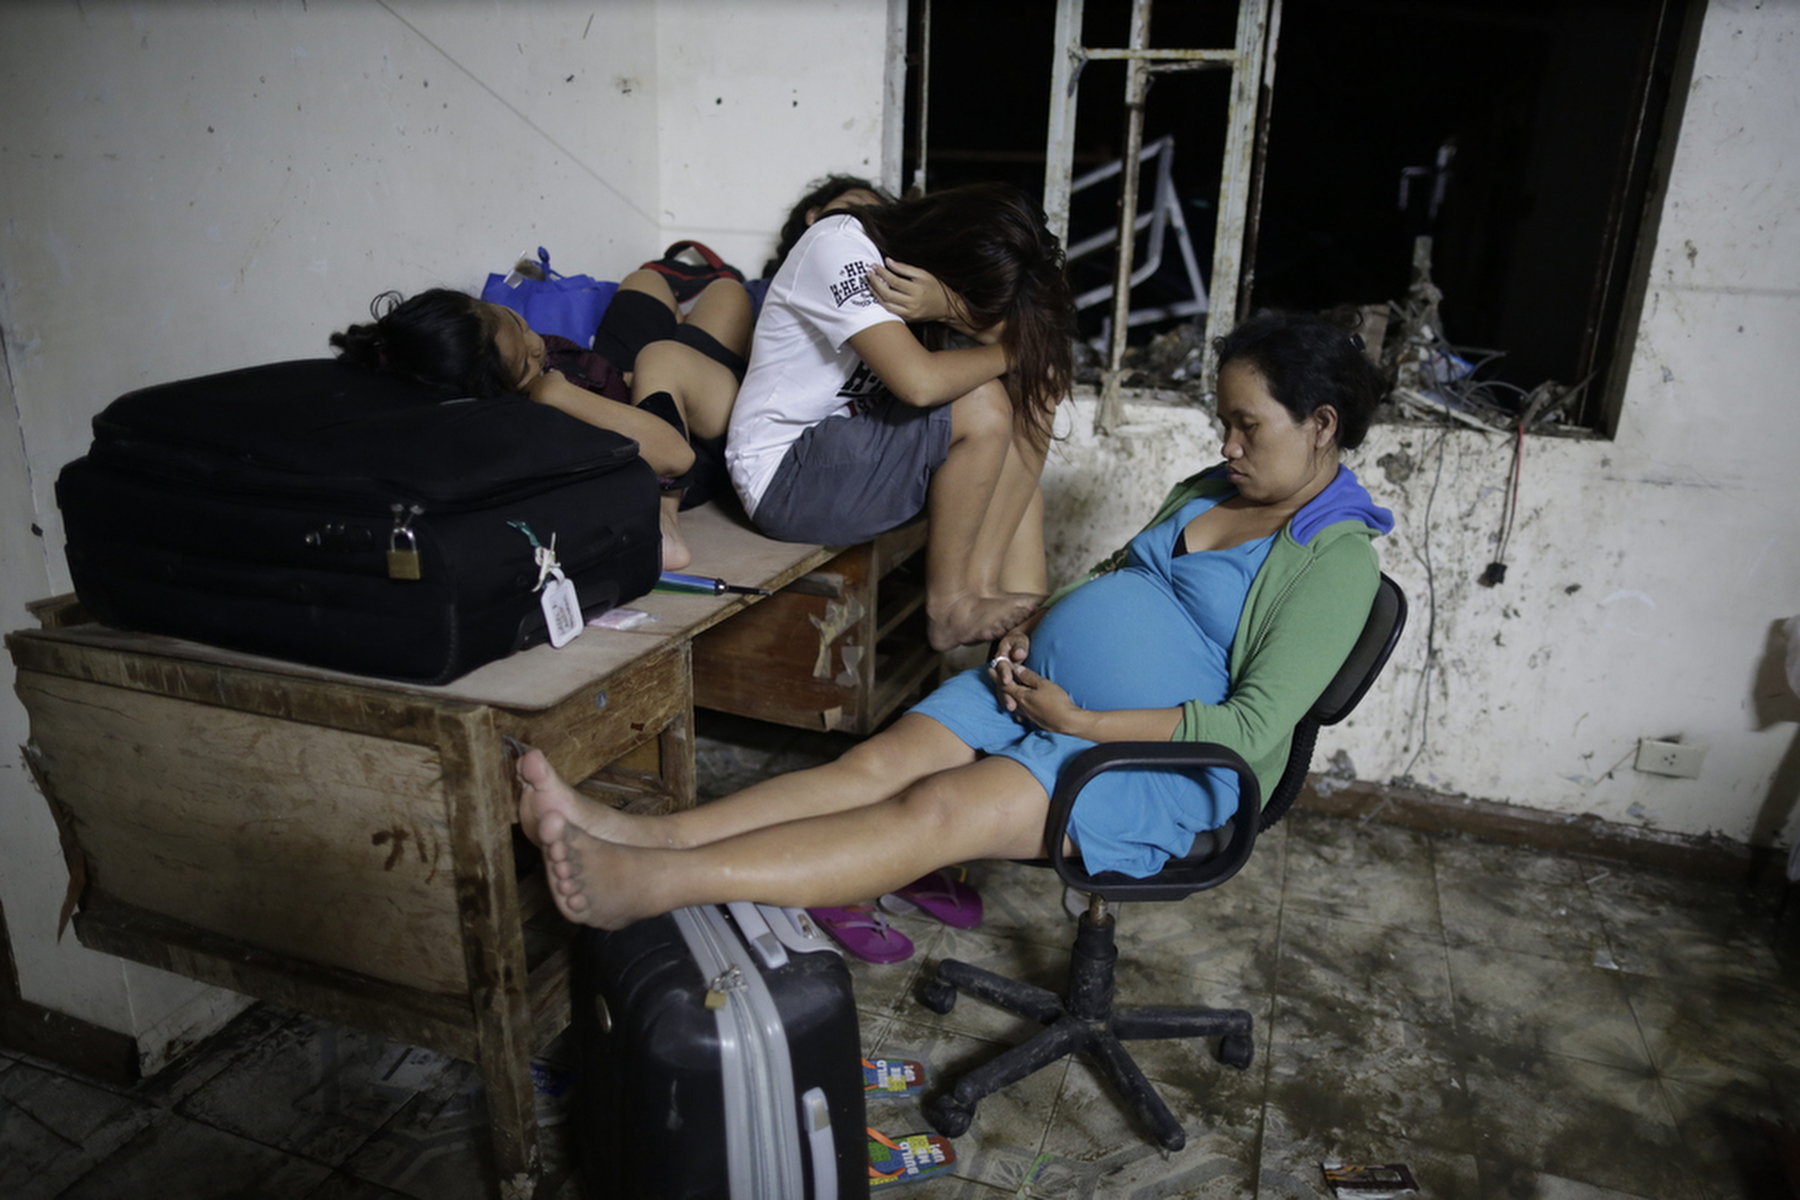 TACLOBAN, PHILIPPINES - NOVEMBER 17: Victims waiting to for a flight out wait at the airport to board a C130 after midnight in Tacloban, Philippines November 17, 2013. Typhoon Haiyan devastated the region with estimated death toll of around 10,000.